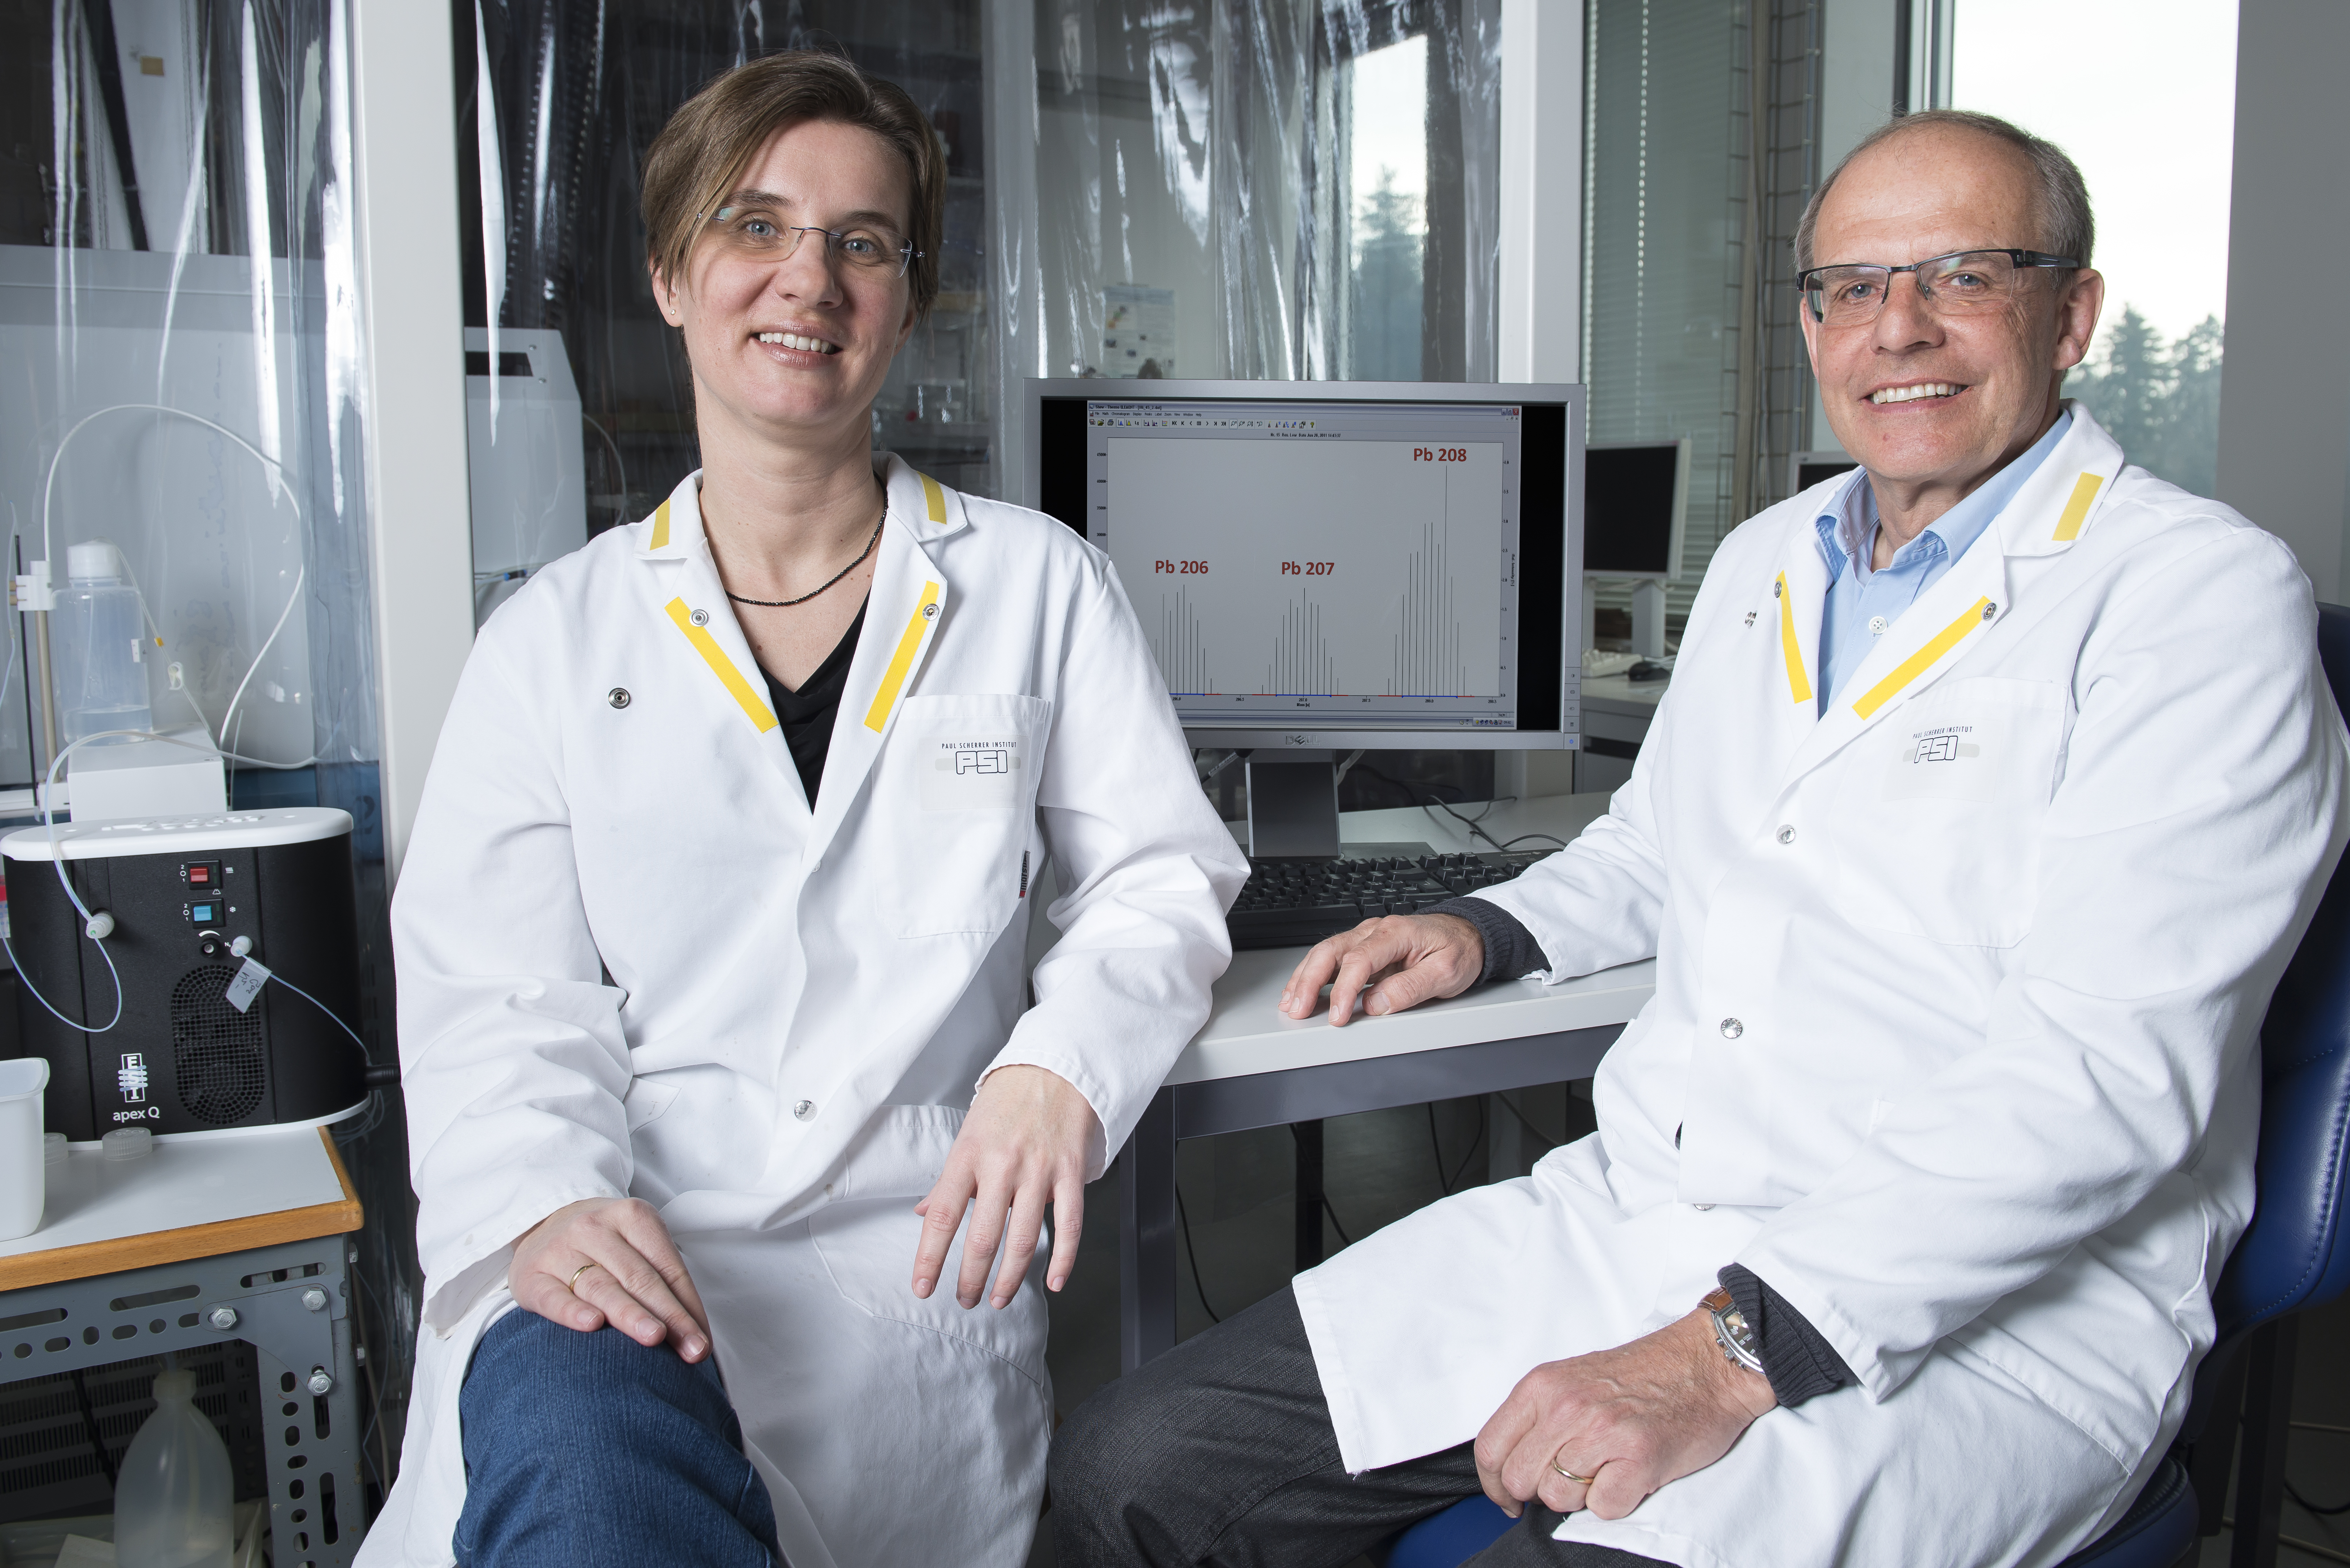 The PSI researchers Anja Eichler (left) and Leonhard Tobler (right), two authors of the study, in the lab, where the measurements with the mass spectrometer were conducted. Photo: Paul Scherrer Institute/Mahir Dzambegovic.